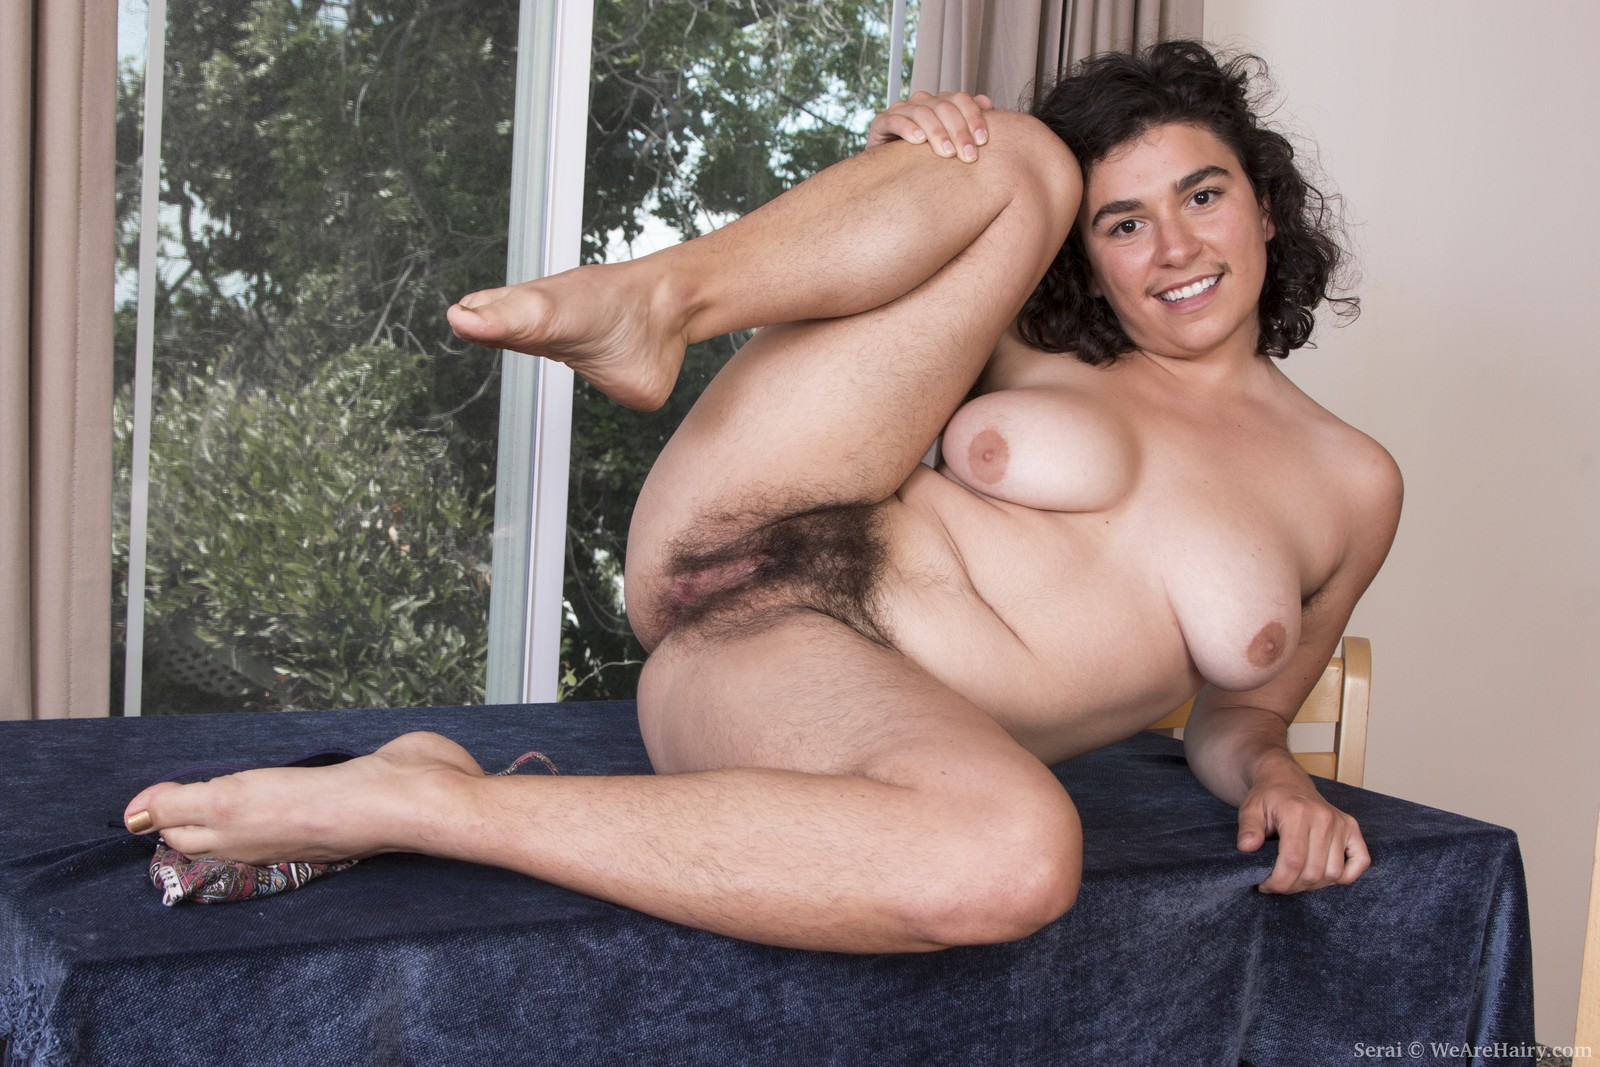 Amusing hairy pussy sitting on chair